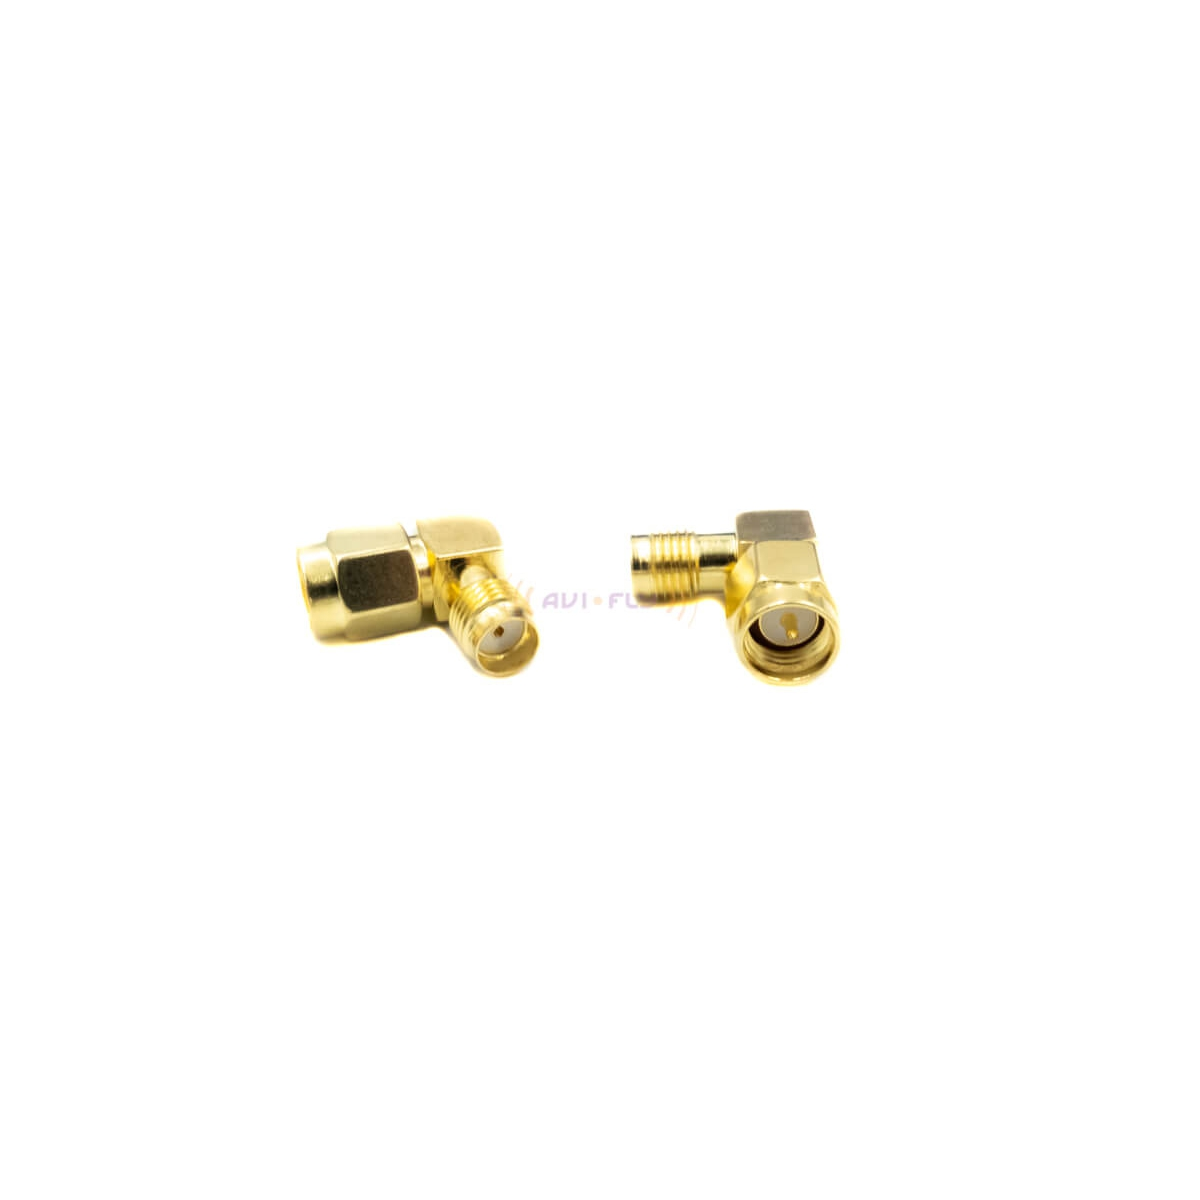 SMA to SMA 90 Degree Adapter for FPV goggles